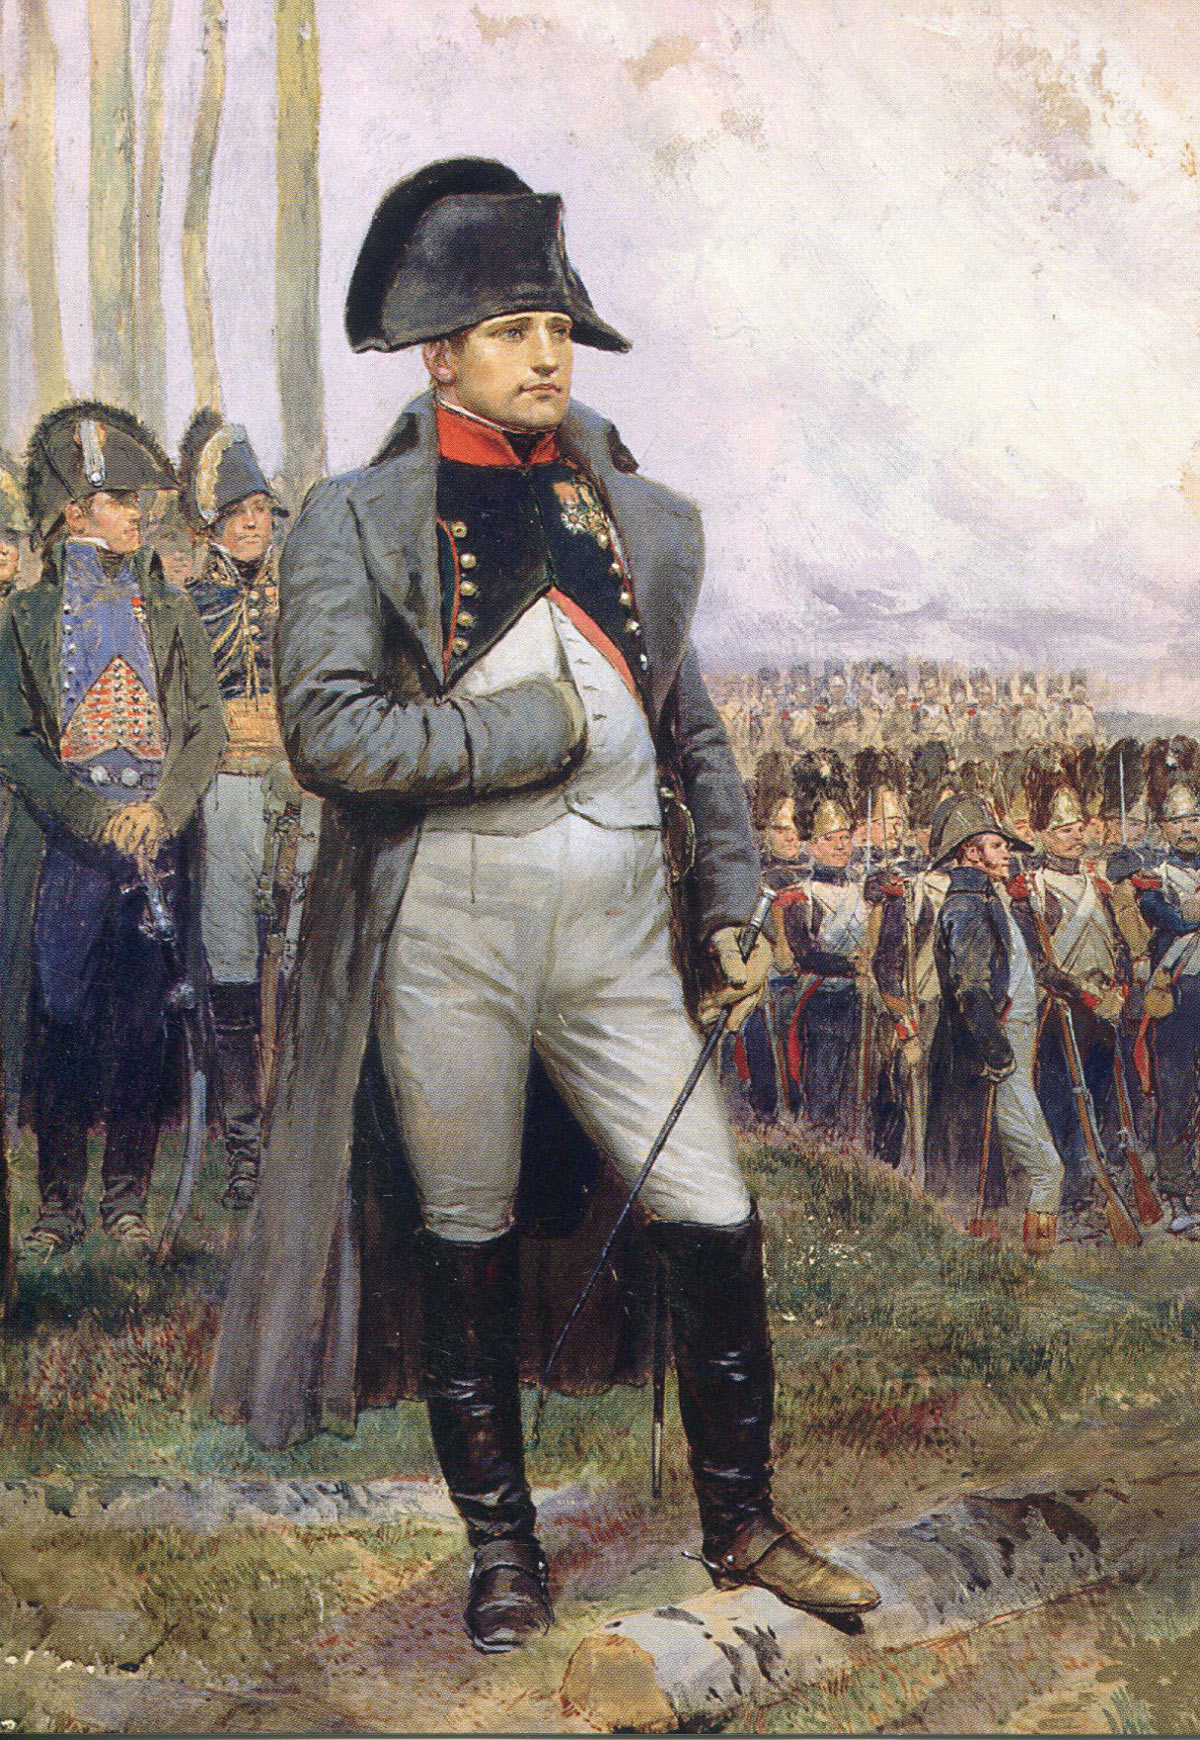 Emperor-Napoleon-reviewing-his-Guard-by-Edouard-Detaille.jpg